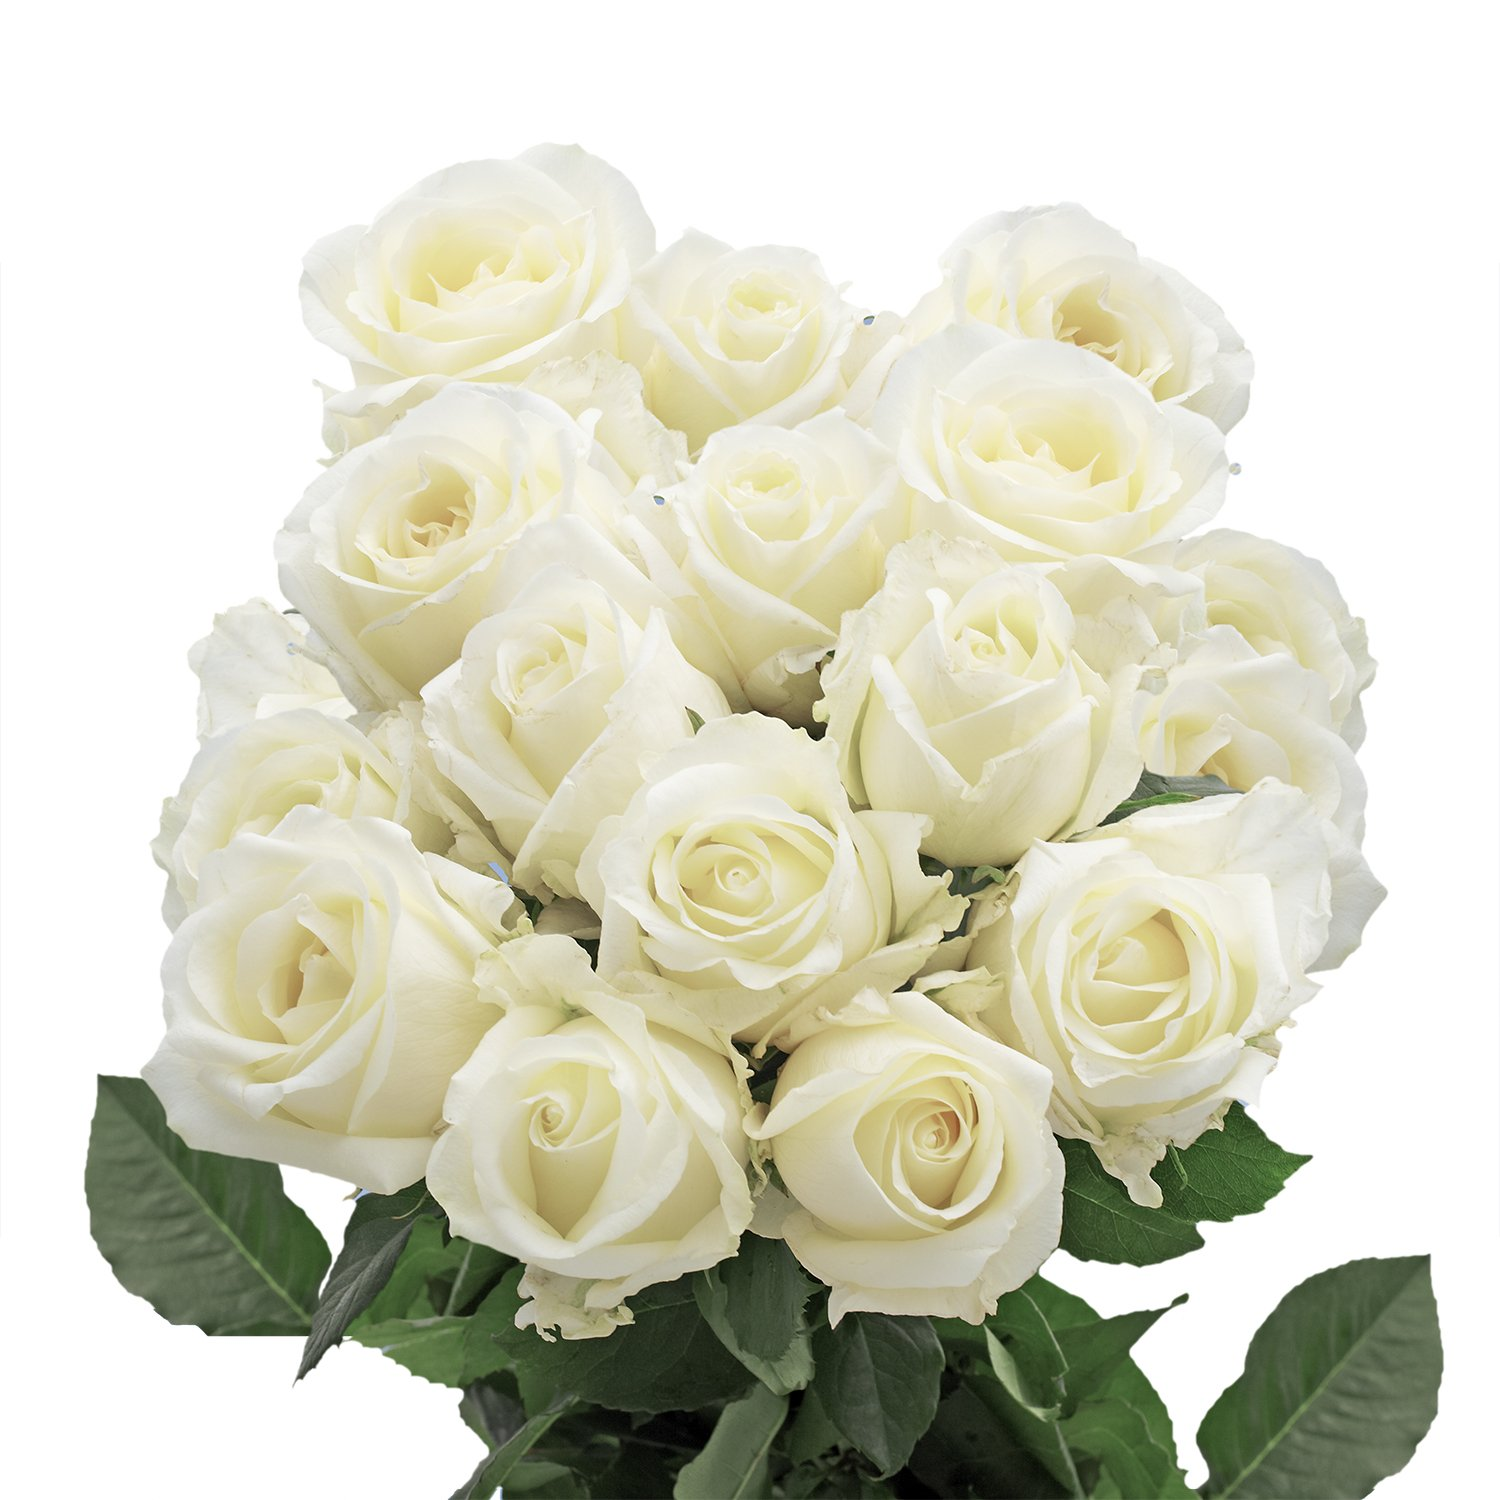 GlobalRose 100 White Roses- Fresh Cut Flower Delivery by GlobalRose